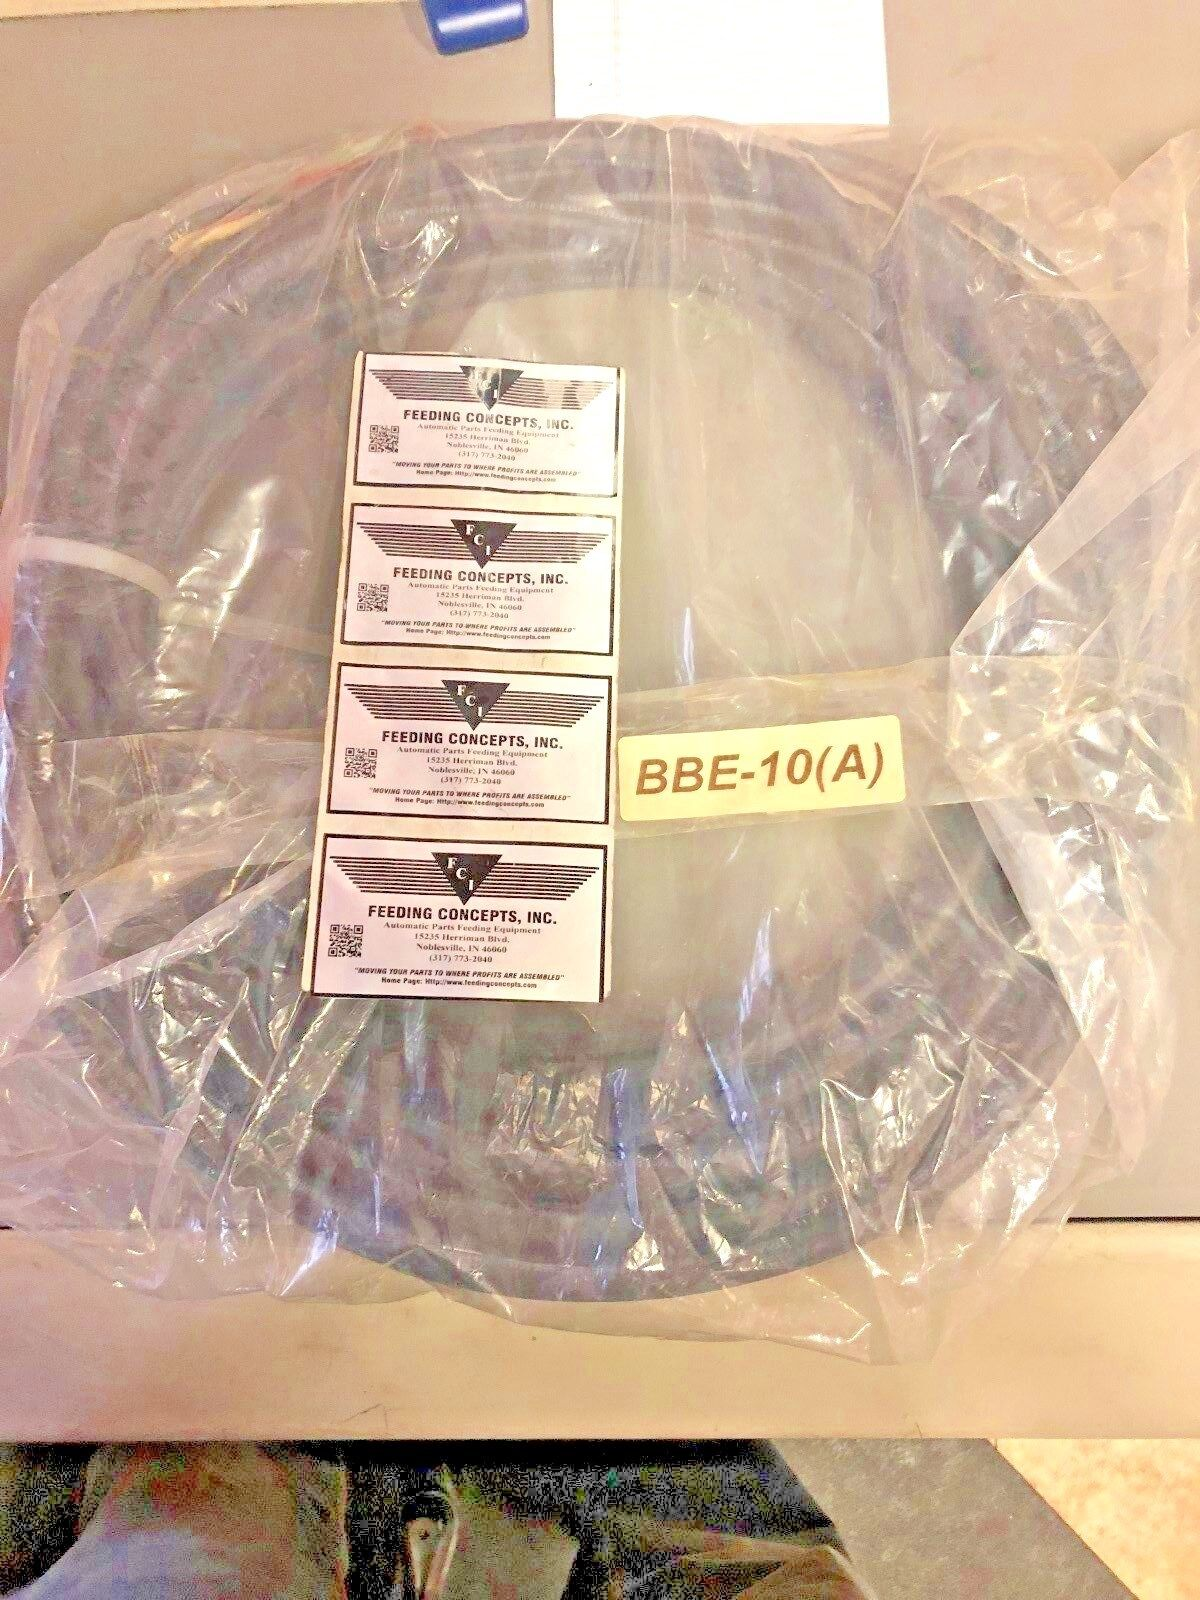 BBE-10(A) Yaskawa   Power Cable